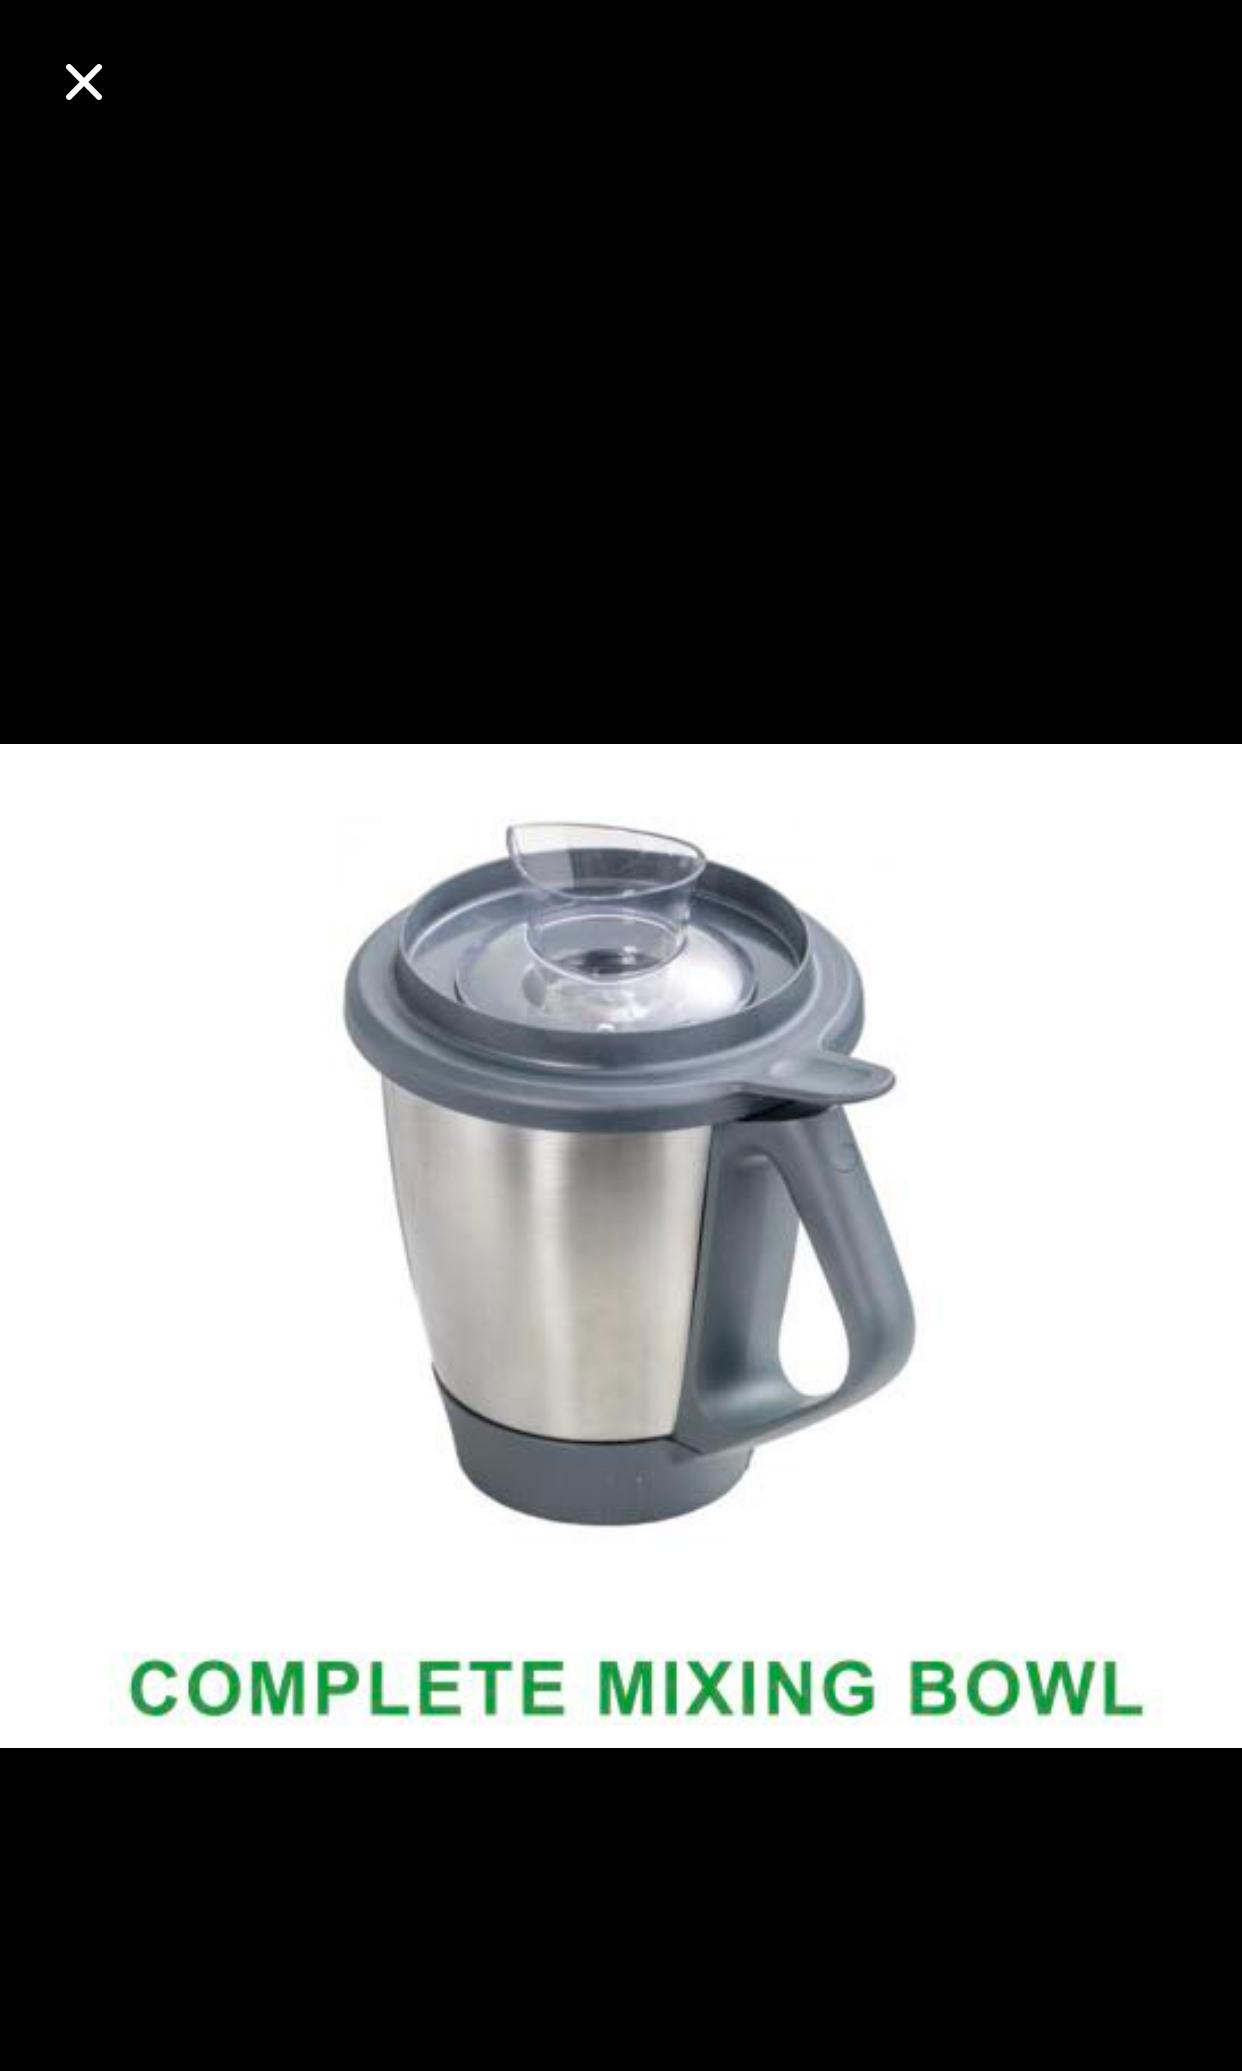 Cooking Chef Ou Thermomix Avis thermomix tm5 mixing bowl, home appliances, kitchenware on